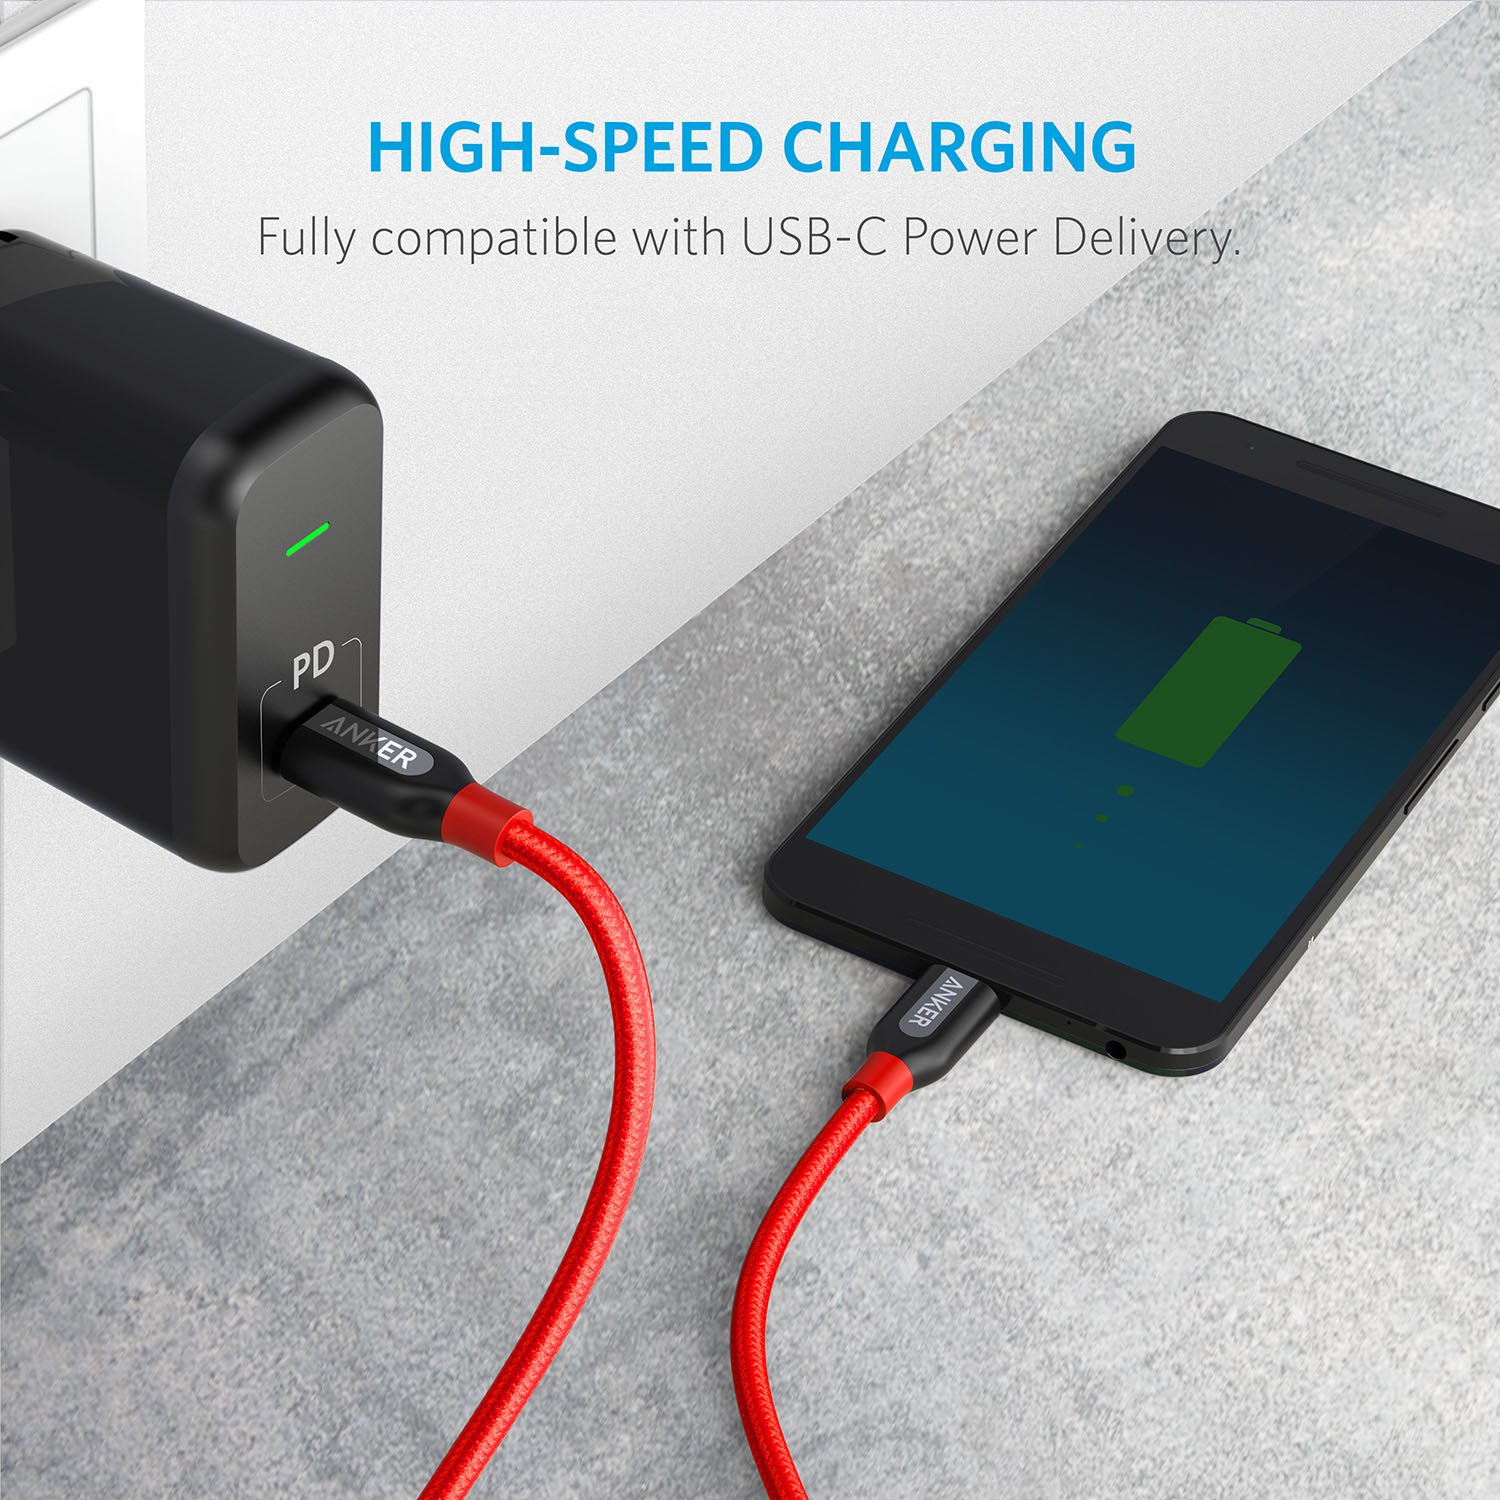 Anker Powerline+ C to C 2.0 Cable Google Pixel High Durability for USB Type-C Devices Including Samsung Galaxy Note 8 S8 S8+ S9 Nexus 6P MacBook and More 6ft Huawei Matebook